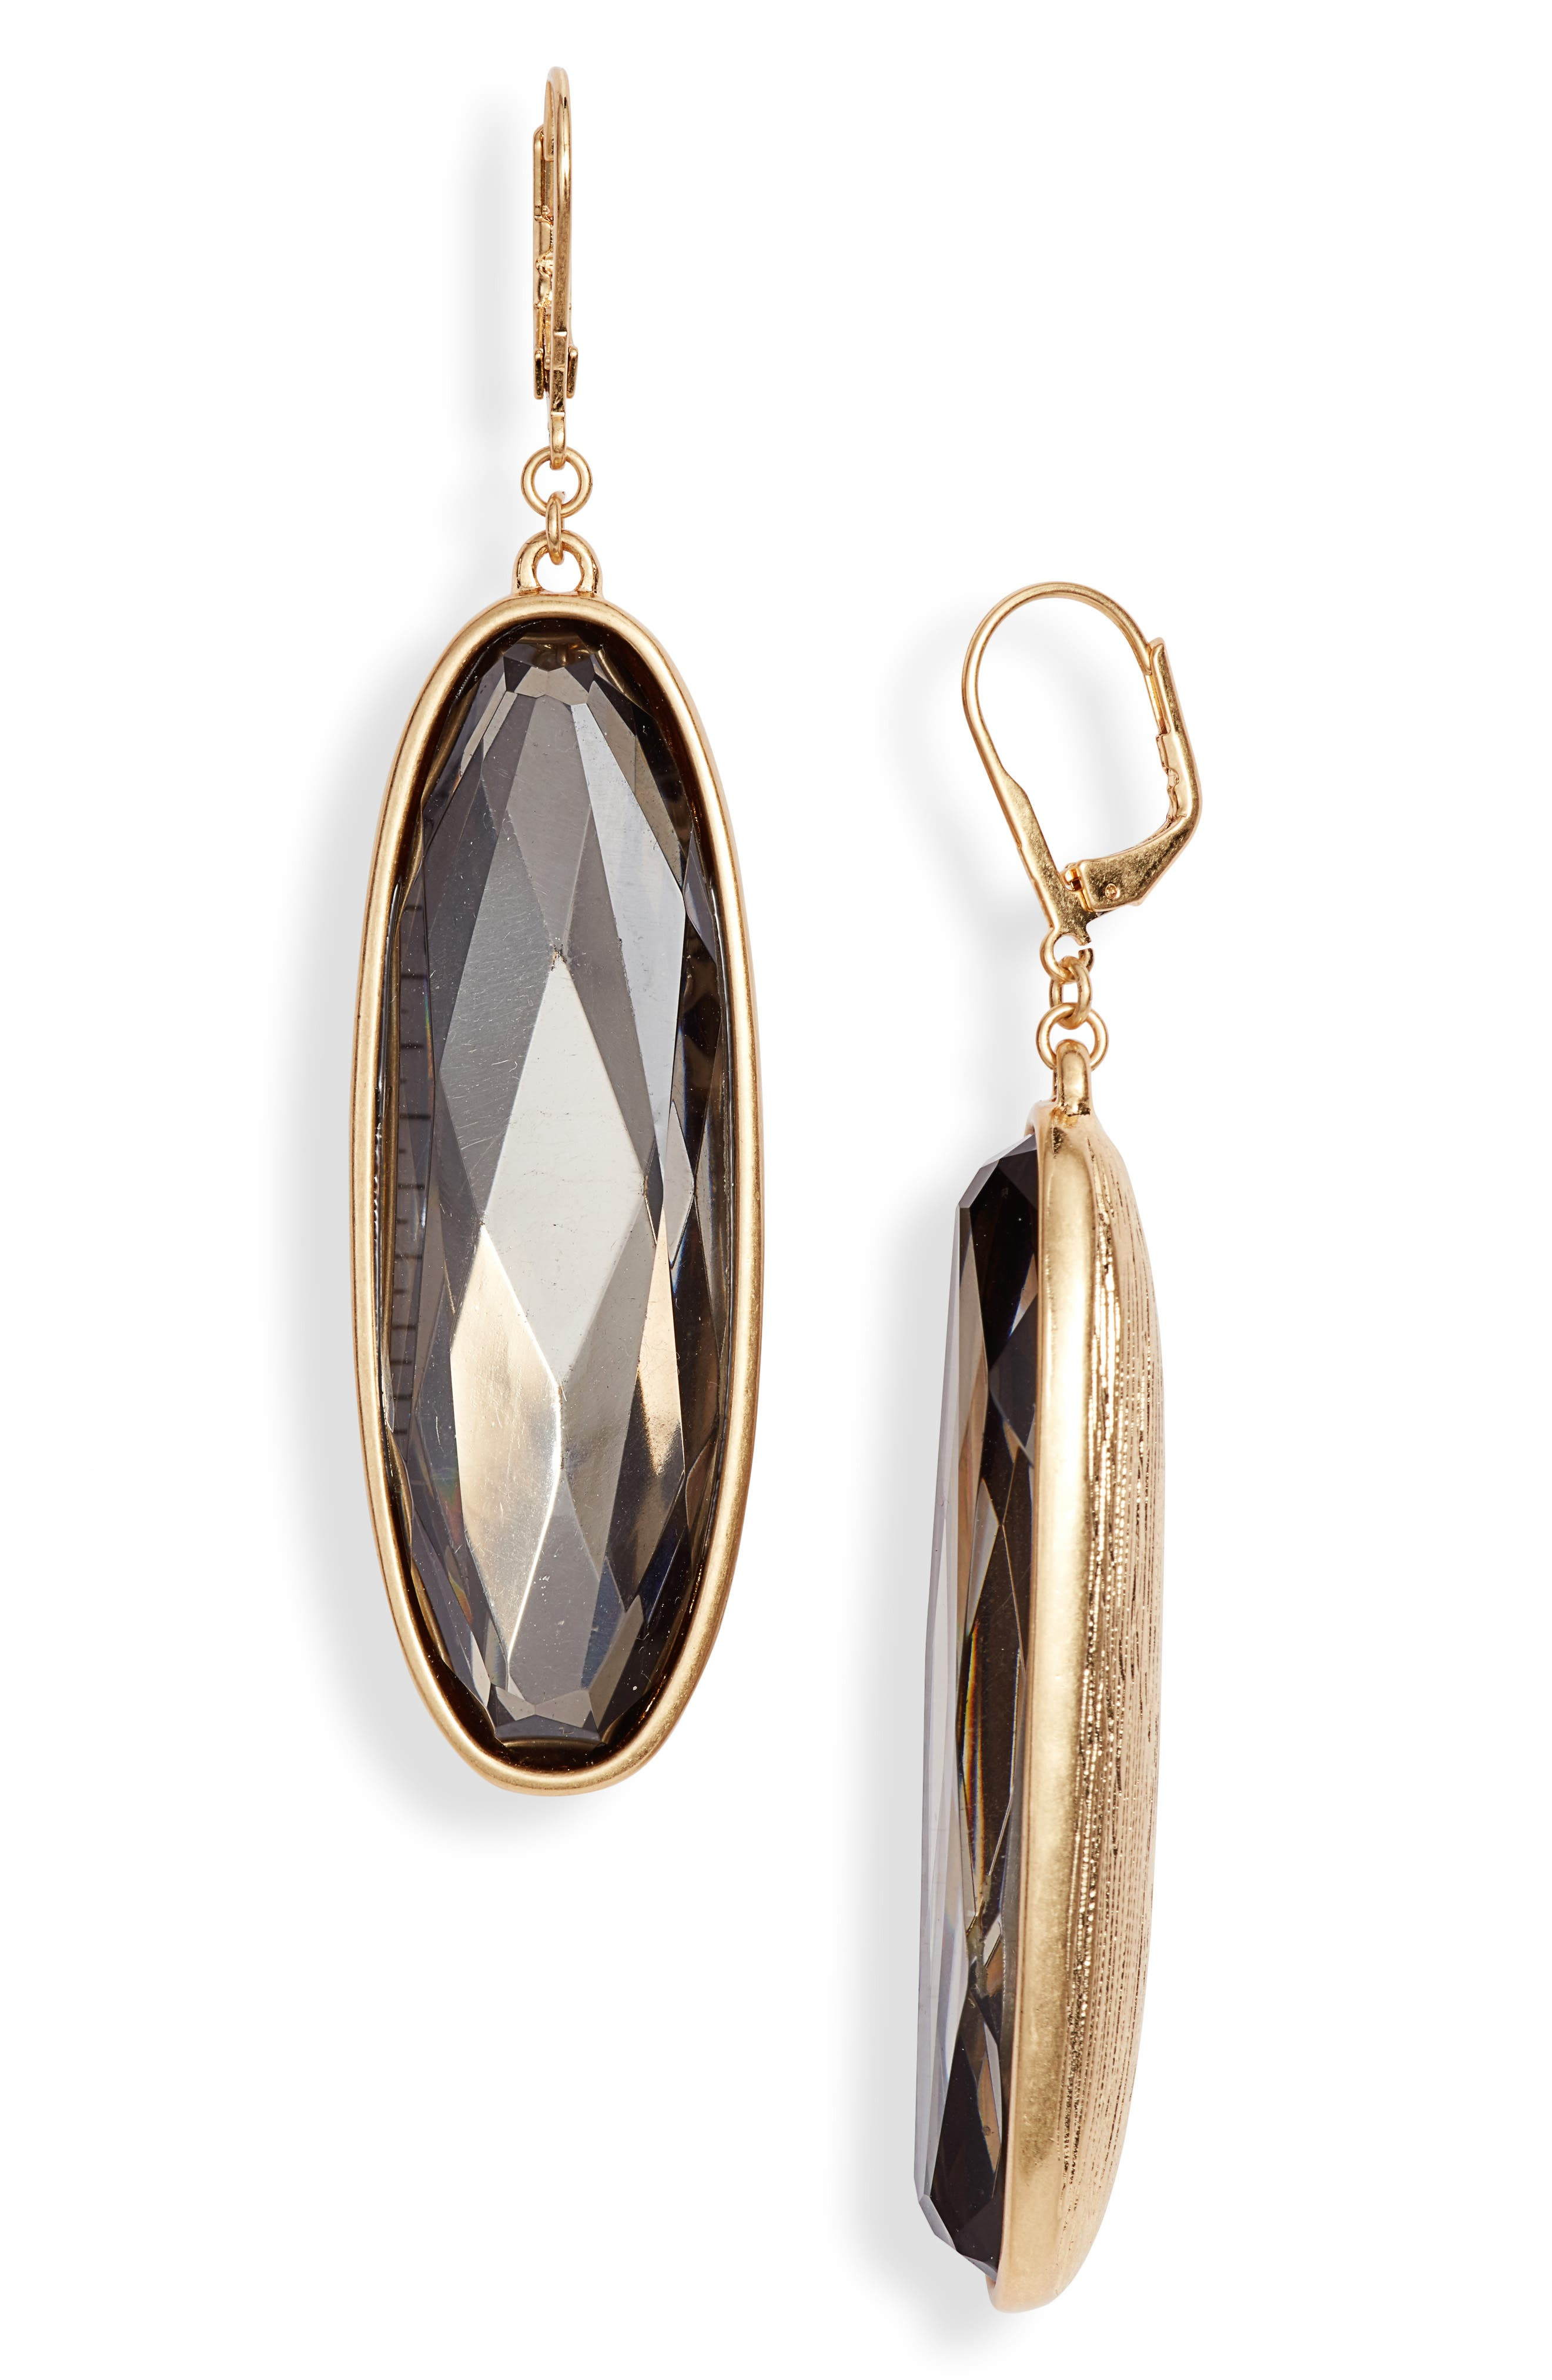 Statement Drop Earrings,                             Main thumbnail 1, color,                             GOLD/ GREIGE CRYSTAL